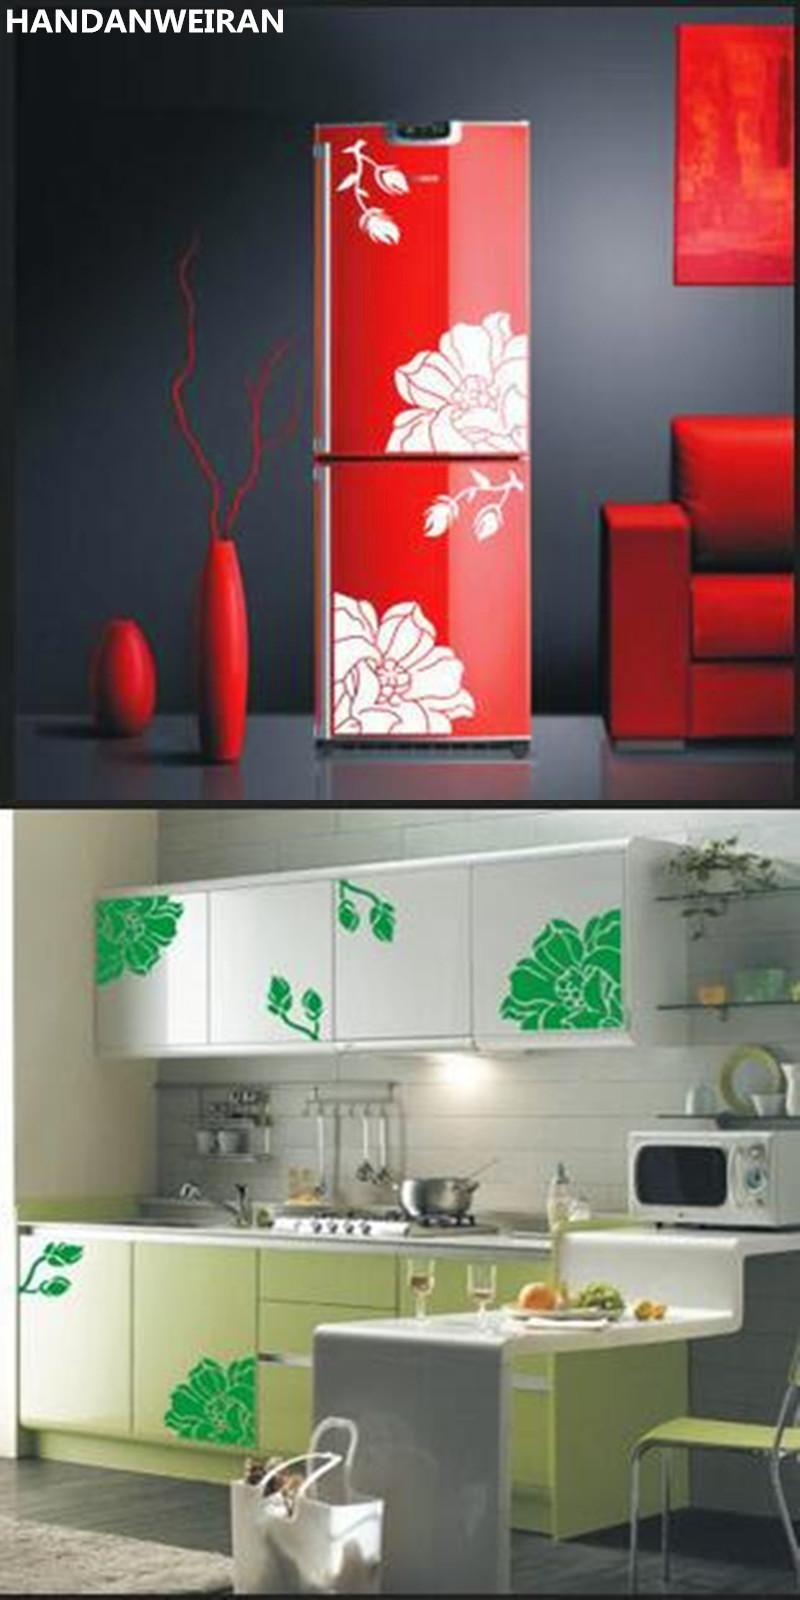 1set Wall Sticker Decals Dining Table Stickers Wardrobe Cabinet Glass Furniture Refrigerator Yulan Magnolia